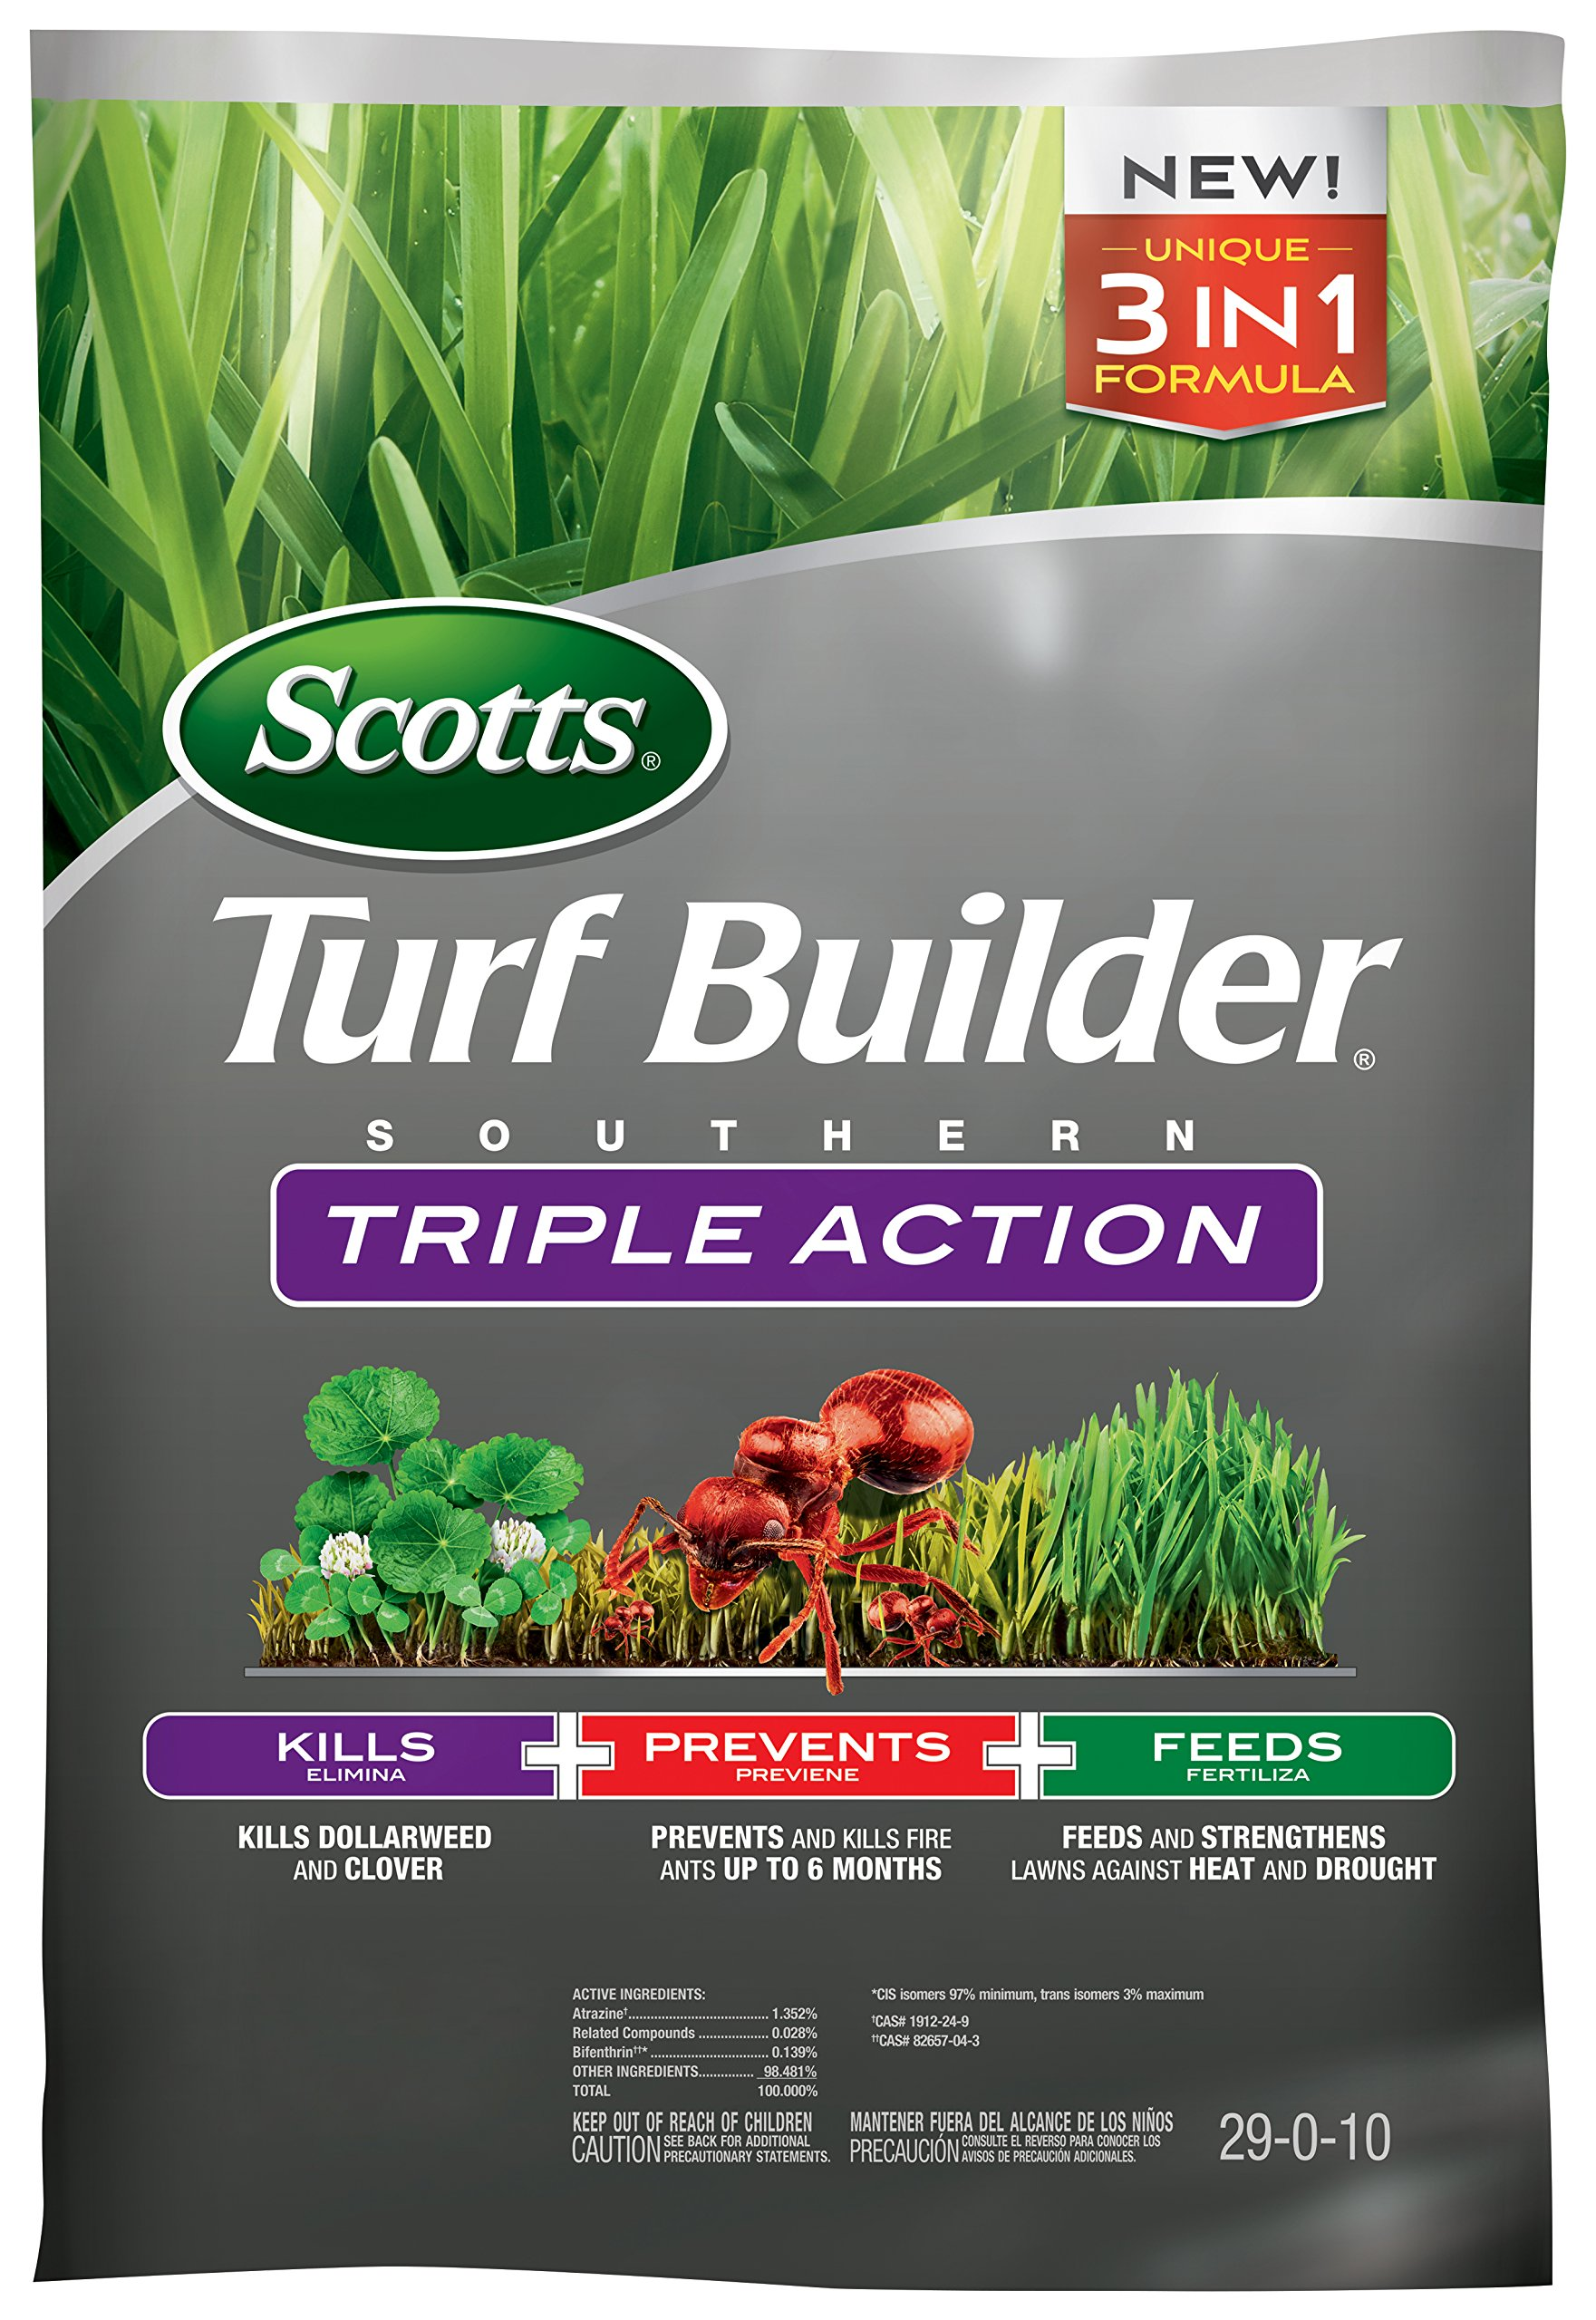 Scotts Turf Builder Southern Triple Action, 26.84 lb. - Kills Dollarweed and Clover, Prevents and Kills Fire Ants, Feeds and Strengthens Lawns - Covers up to 8,000 sq. ft. by Scotts